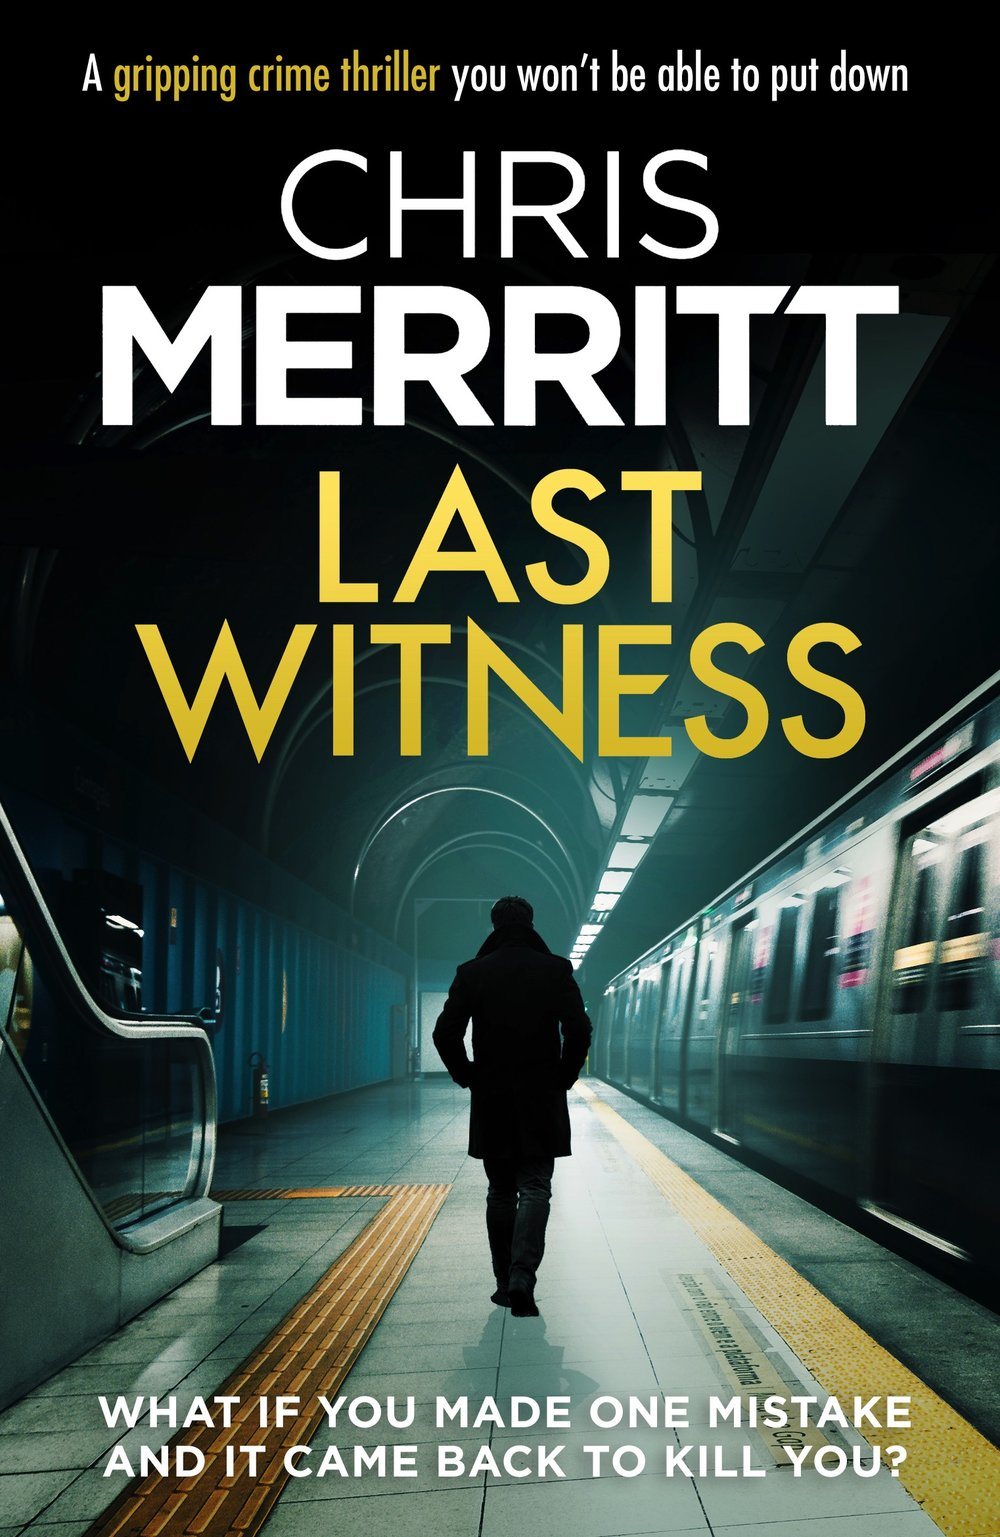 LAST WITNESS - DI Zac Boateng book 2What if you made one mistake and it came back to kill you?Detective Zac Boateng's old friend, Troy McEwen, is found dead in his home. The official verdict is suicide. But Boateng believes it was murder. And he thinks he might be next on the killer's list.If Troy didn't take his own life, then who did? As he investigates, Boateng discovers a link to an incident from decades earlier. Mistakes were made that day. Lives were lost and secrets kept. Until now...As more people who were there on that fateful day are found dead, Boateng knows that the killer is closing in on him...Available to buy on ebook or print-on-demand:mybook.to/LWSocial